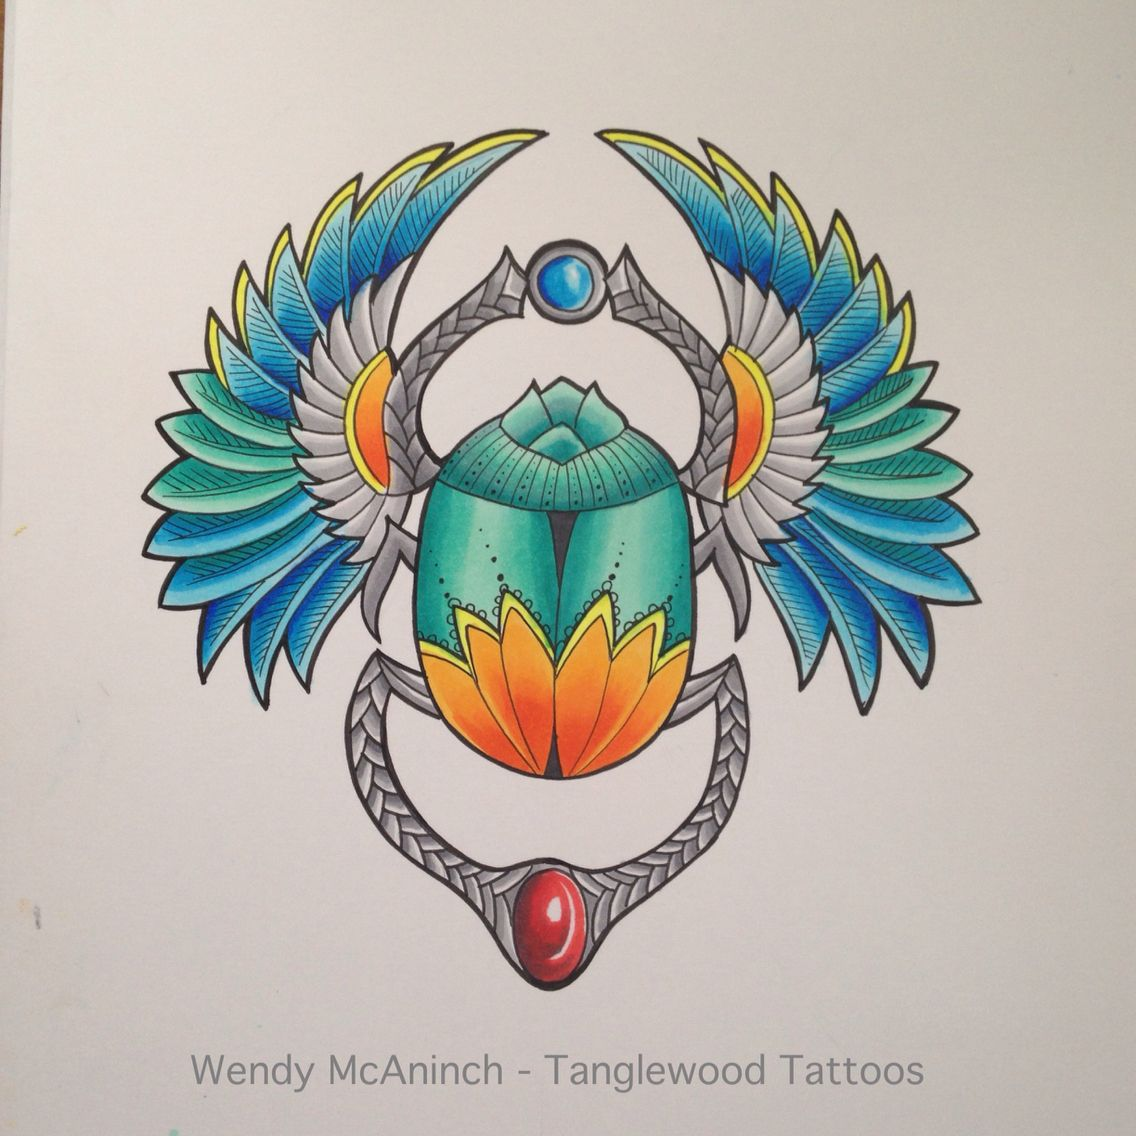 egyptian scarab tattoo design by wendy mcaninch drawing coloring pinterest scarab tattoo. Black Bedroom Furniture Sets. Home Design Ideas